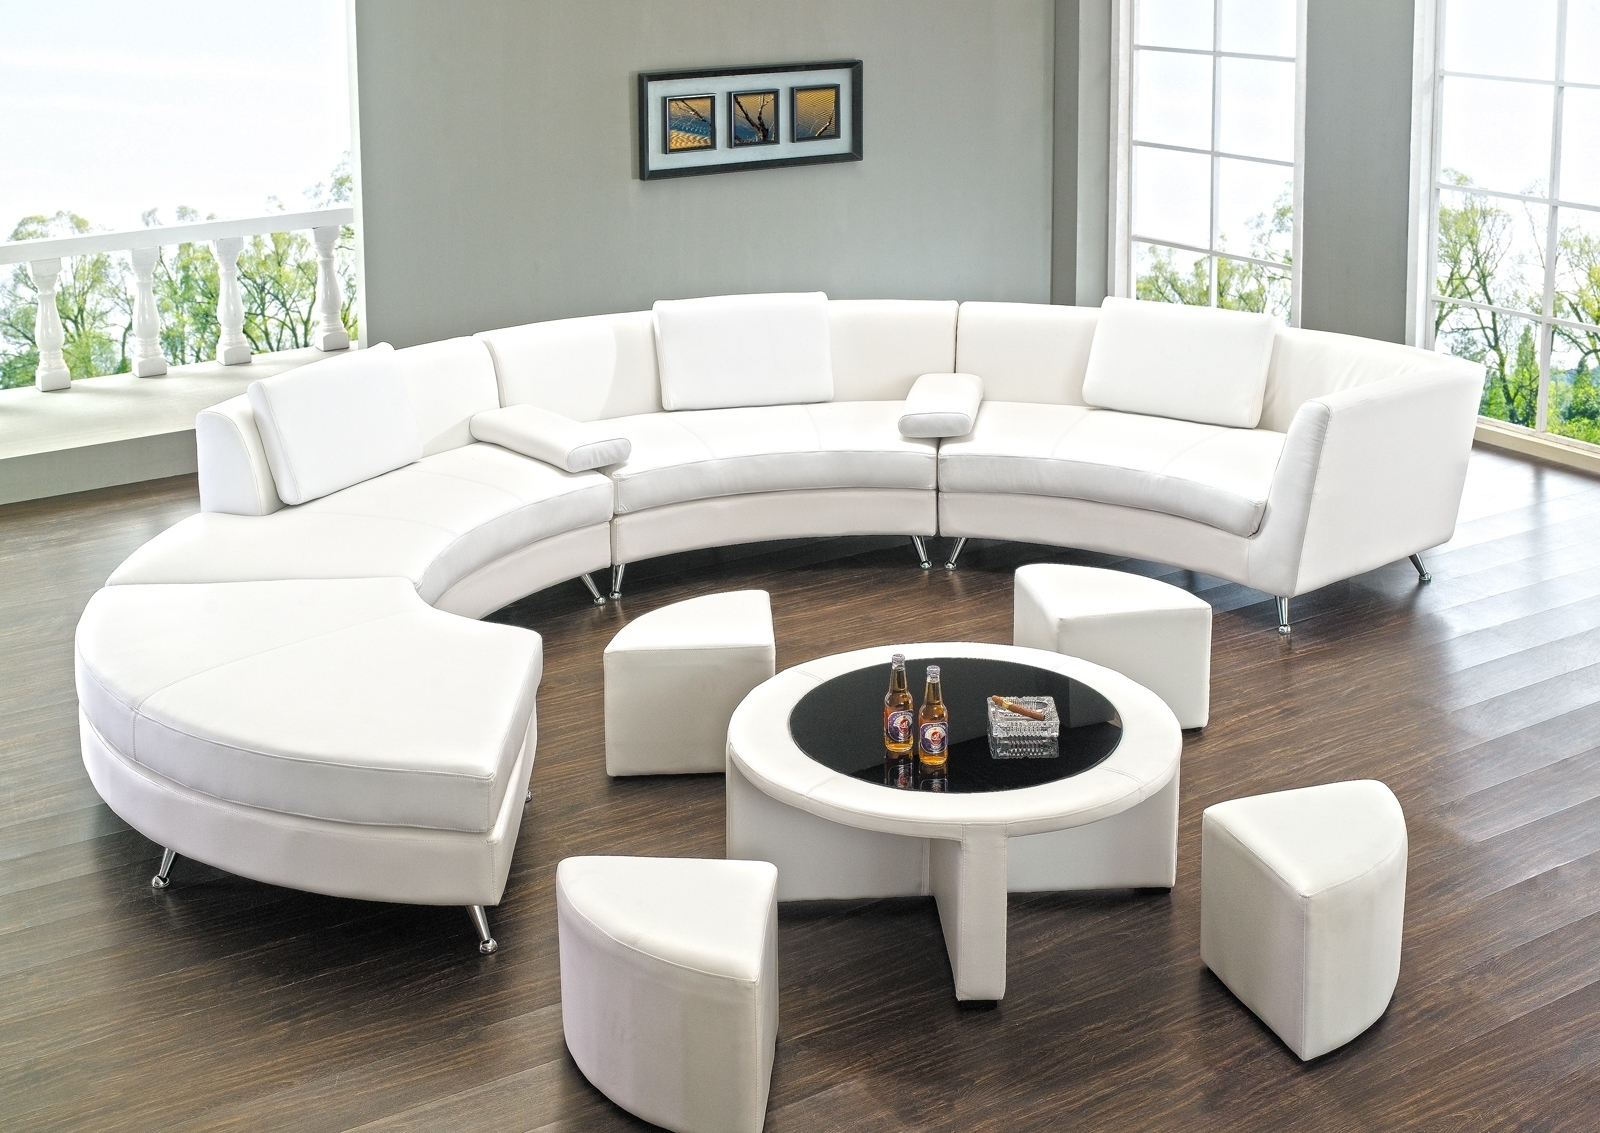 Round Sectional Sofa Has One Of The Best Kind Of Other Is Within Best And Newest Round Sectional Sofas (View 12 of 20)